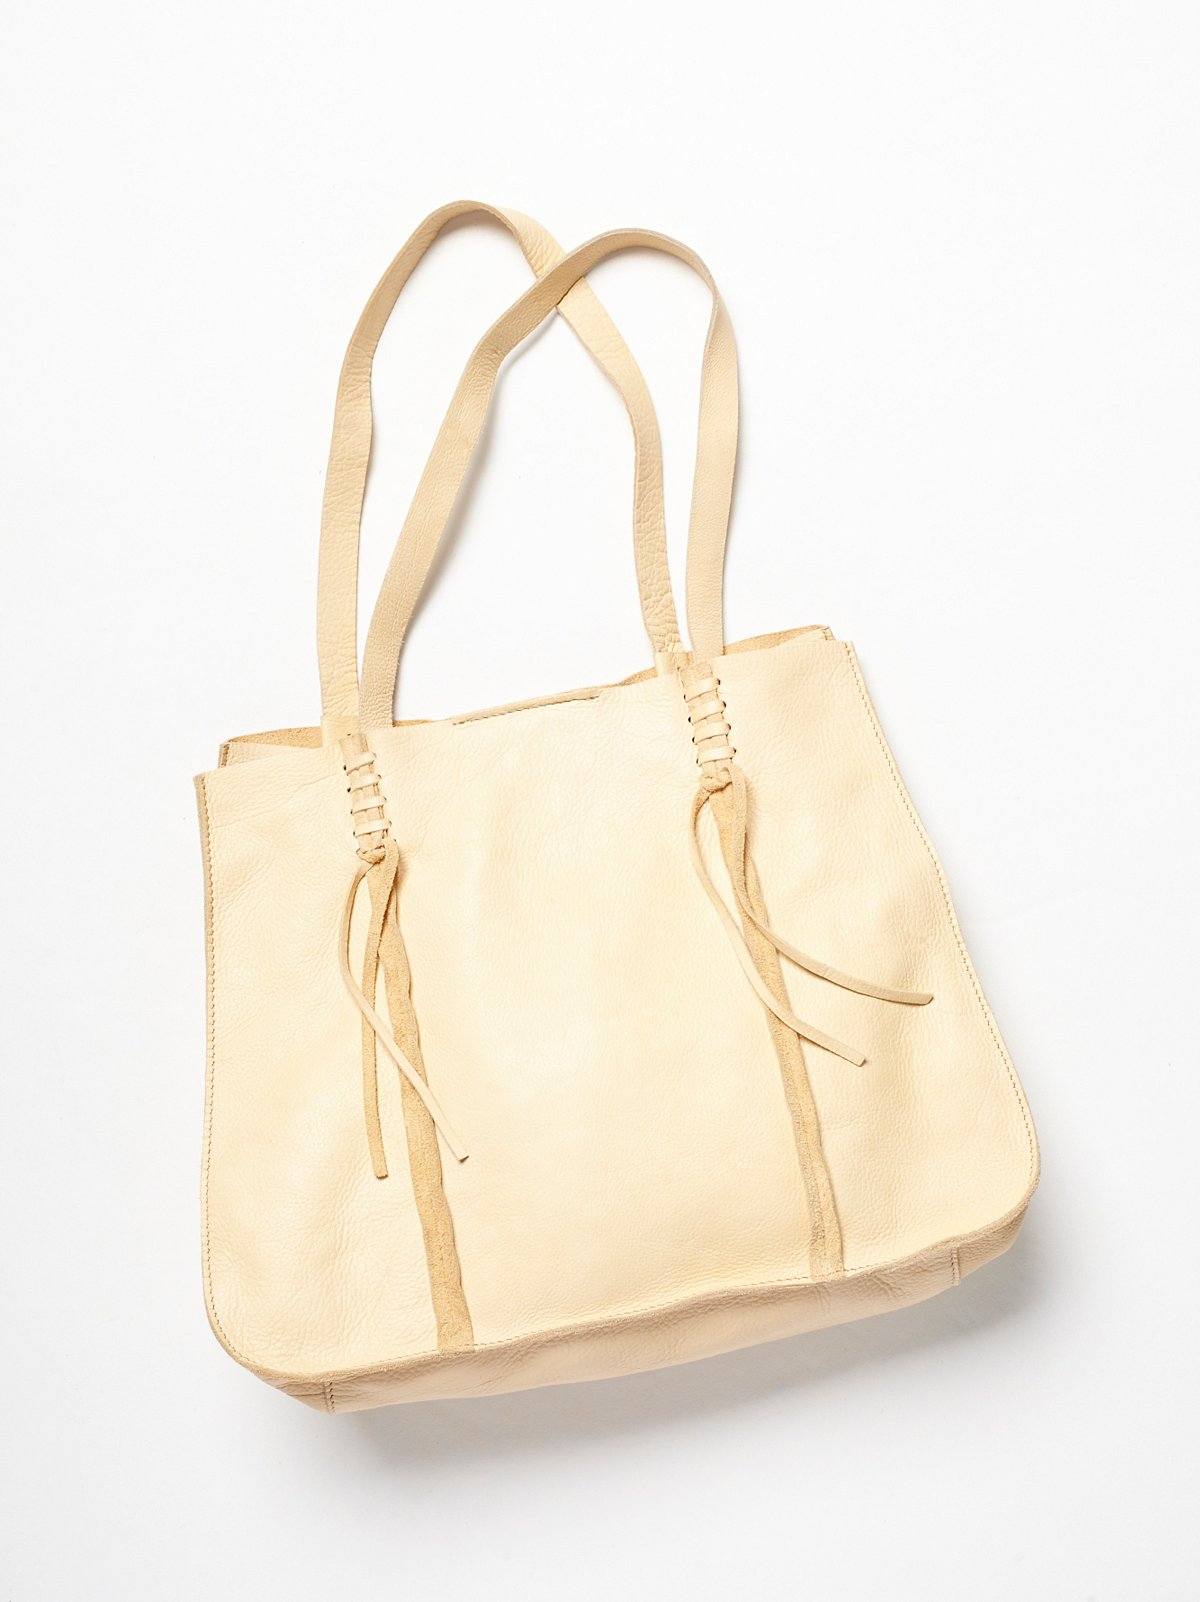 End of the Line Tote